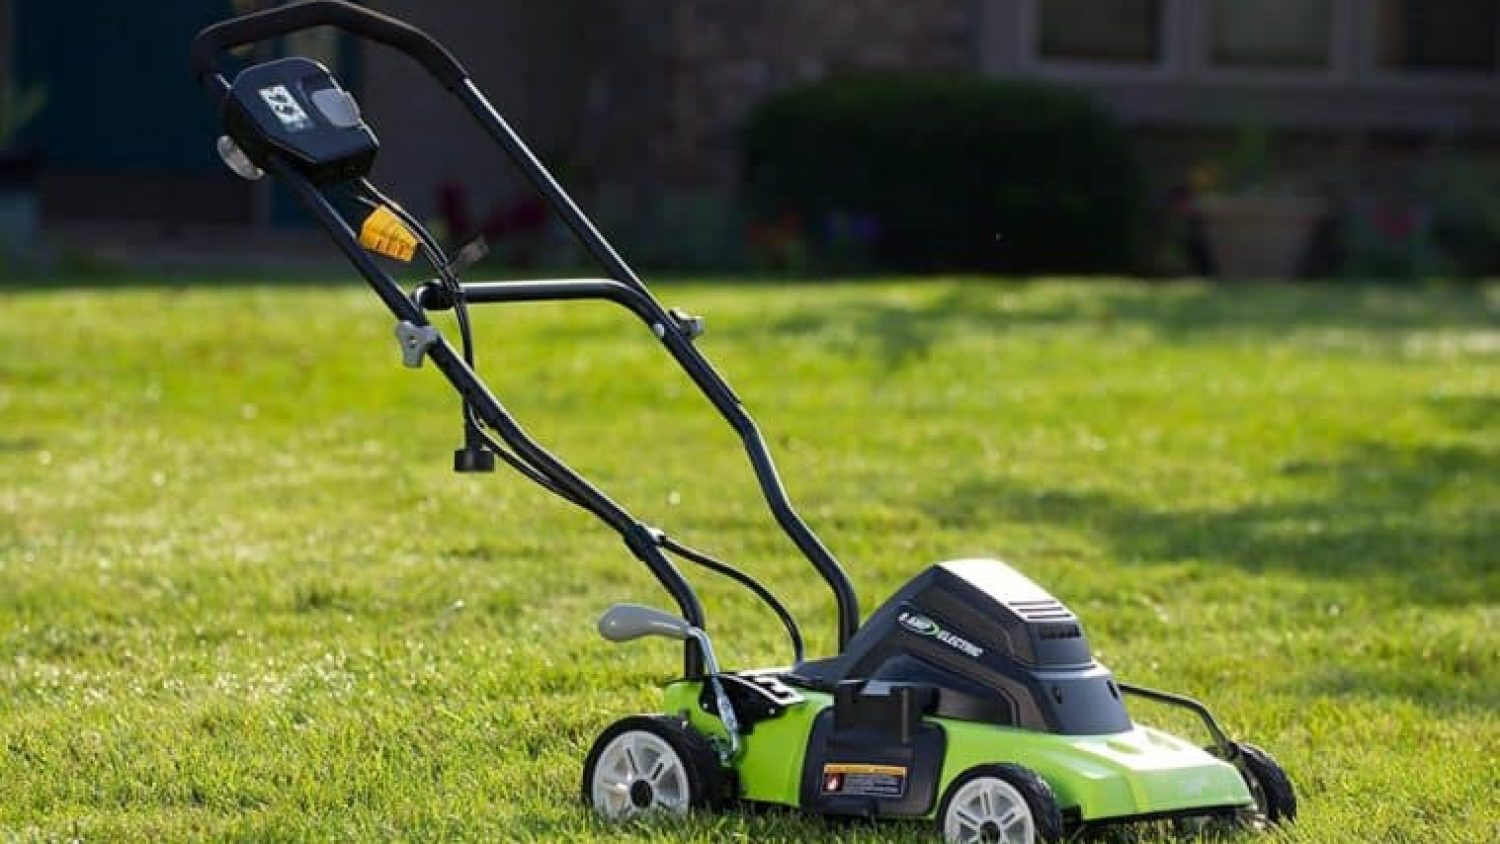 Learn How to Sharpen Your Lawn Mower Blade Like a Pro With These 8 Tips